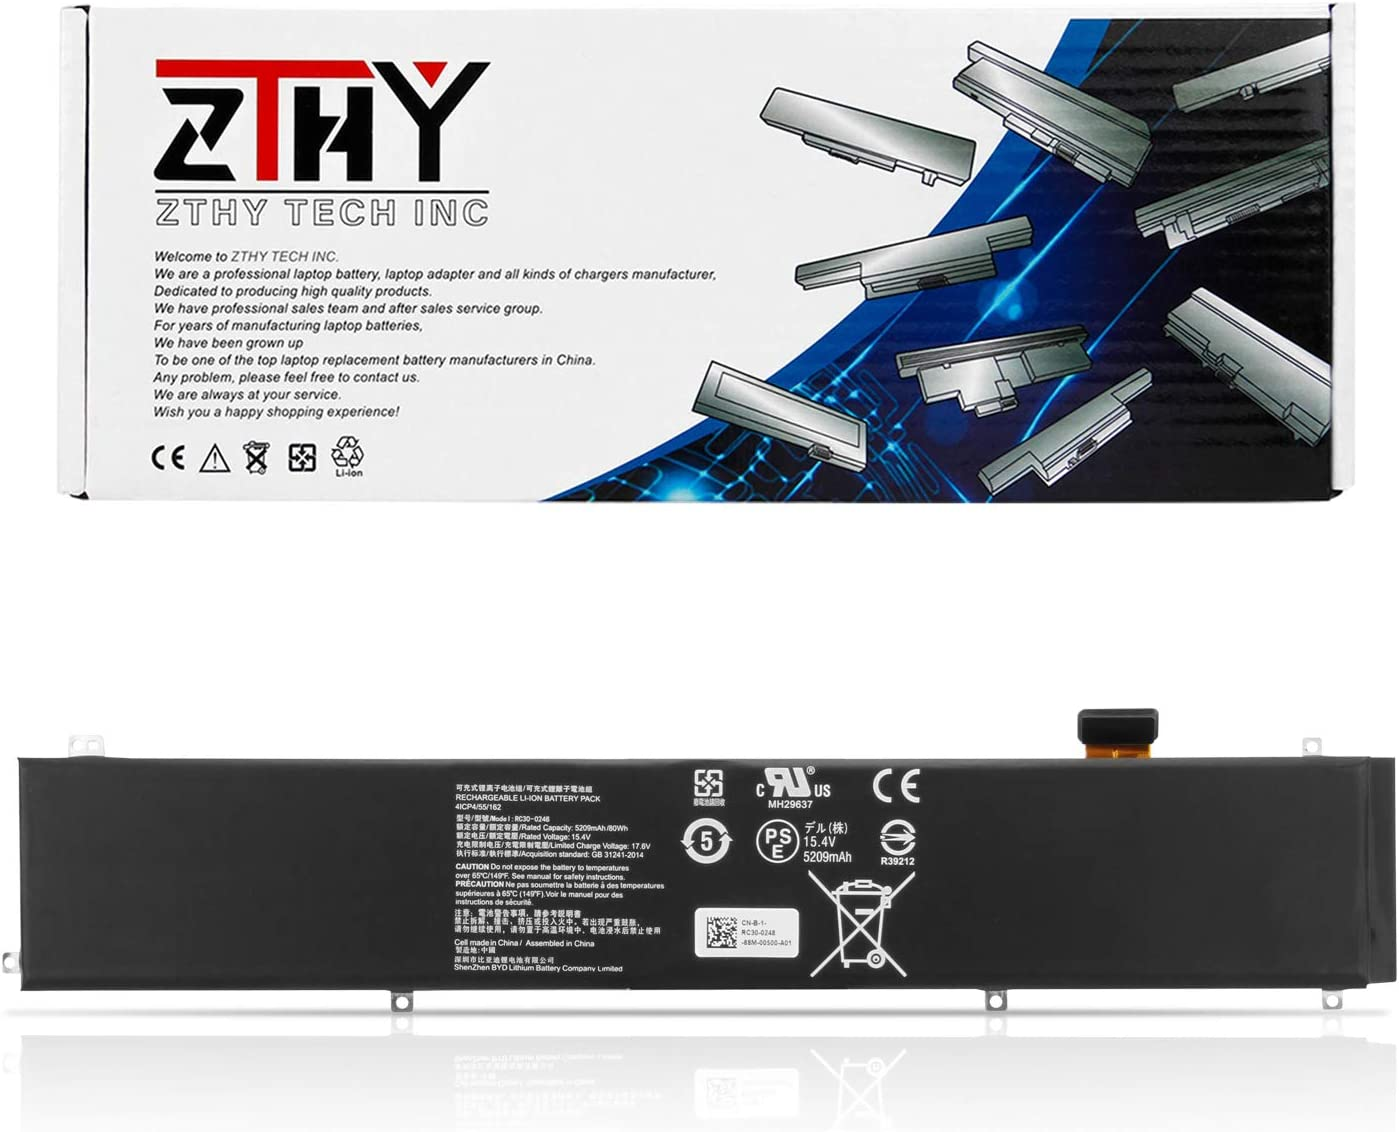 ZTHY 80Wh RC30-0248 Laptop Battery Replacement for Razer Blade 15 Advanced 2018 2019 RTX 2060 2070 2080 RZ09-02385 RZ09-02386 RZ09-02386E91-R3U1 RZ09-02385W71-R3W1 RZ09-02385E92-R3U1 RZ09-03135 15.4V